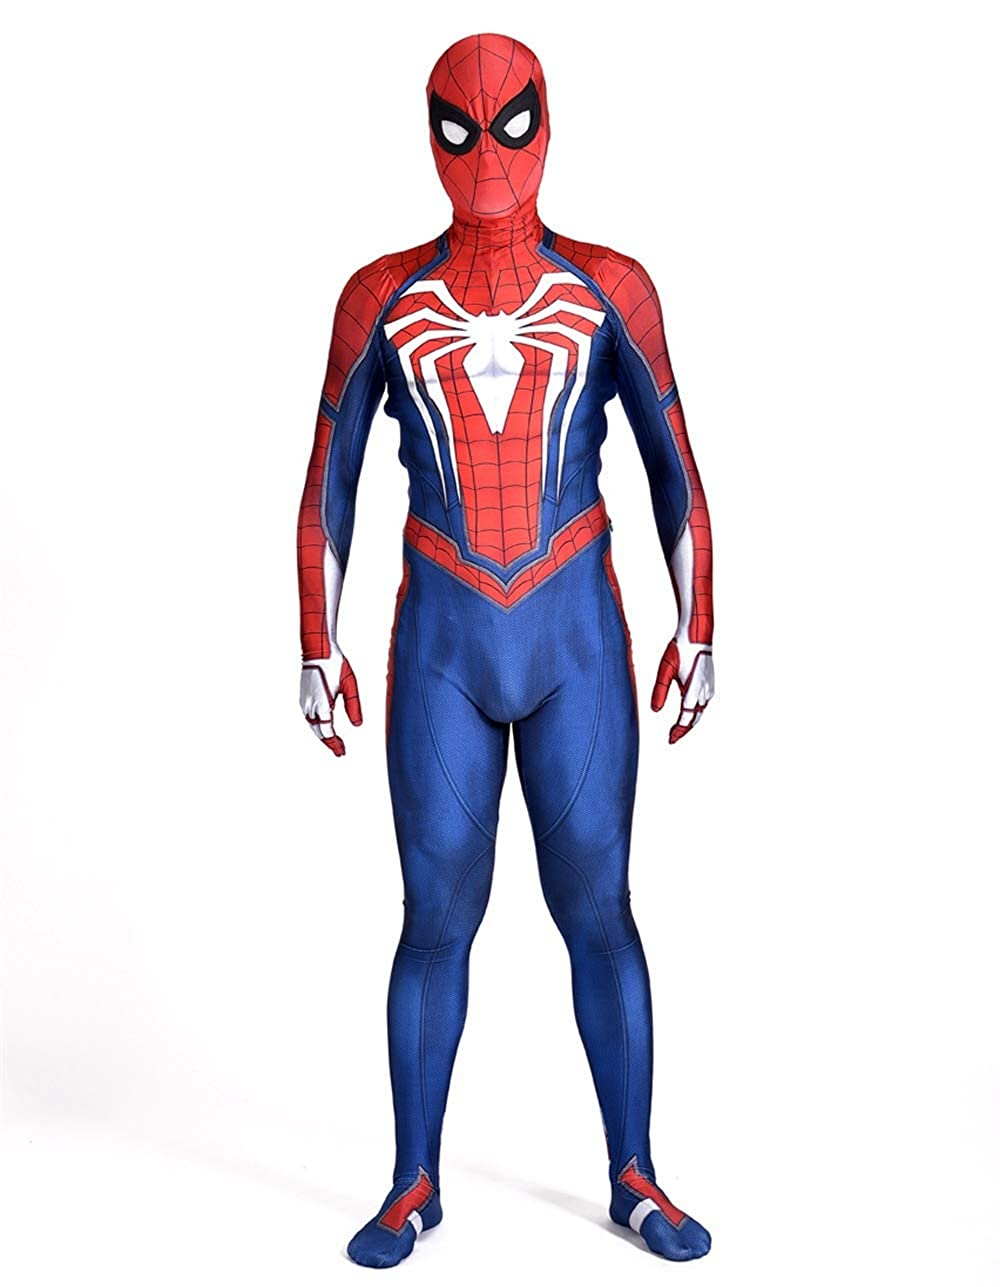 Spider Man Halloween Costume Adults.Spider Superhero Ps4 Game 2018 Cosplay Costumes Adult 3d Style New Edition